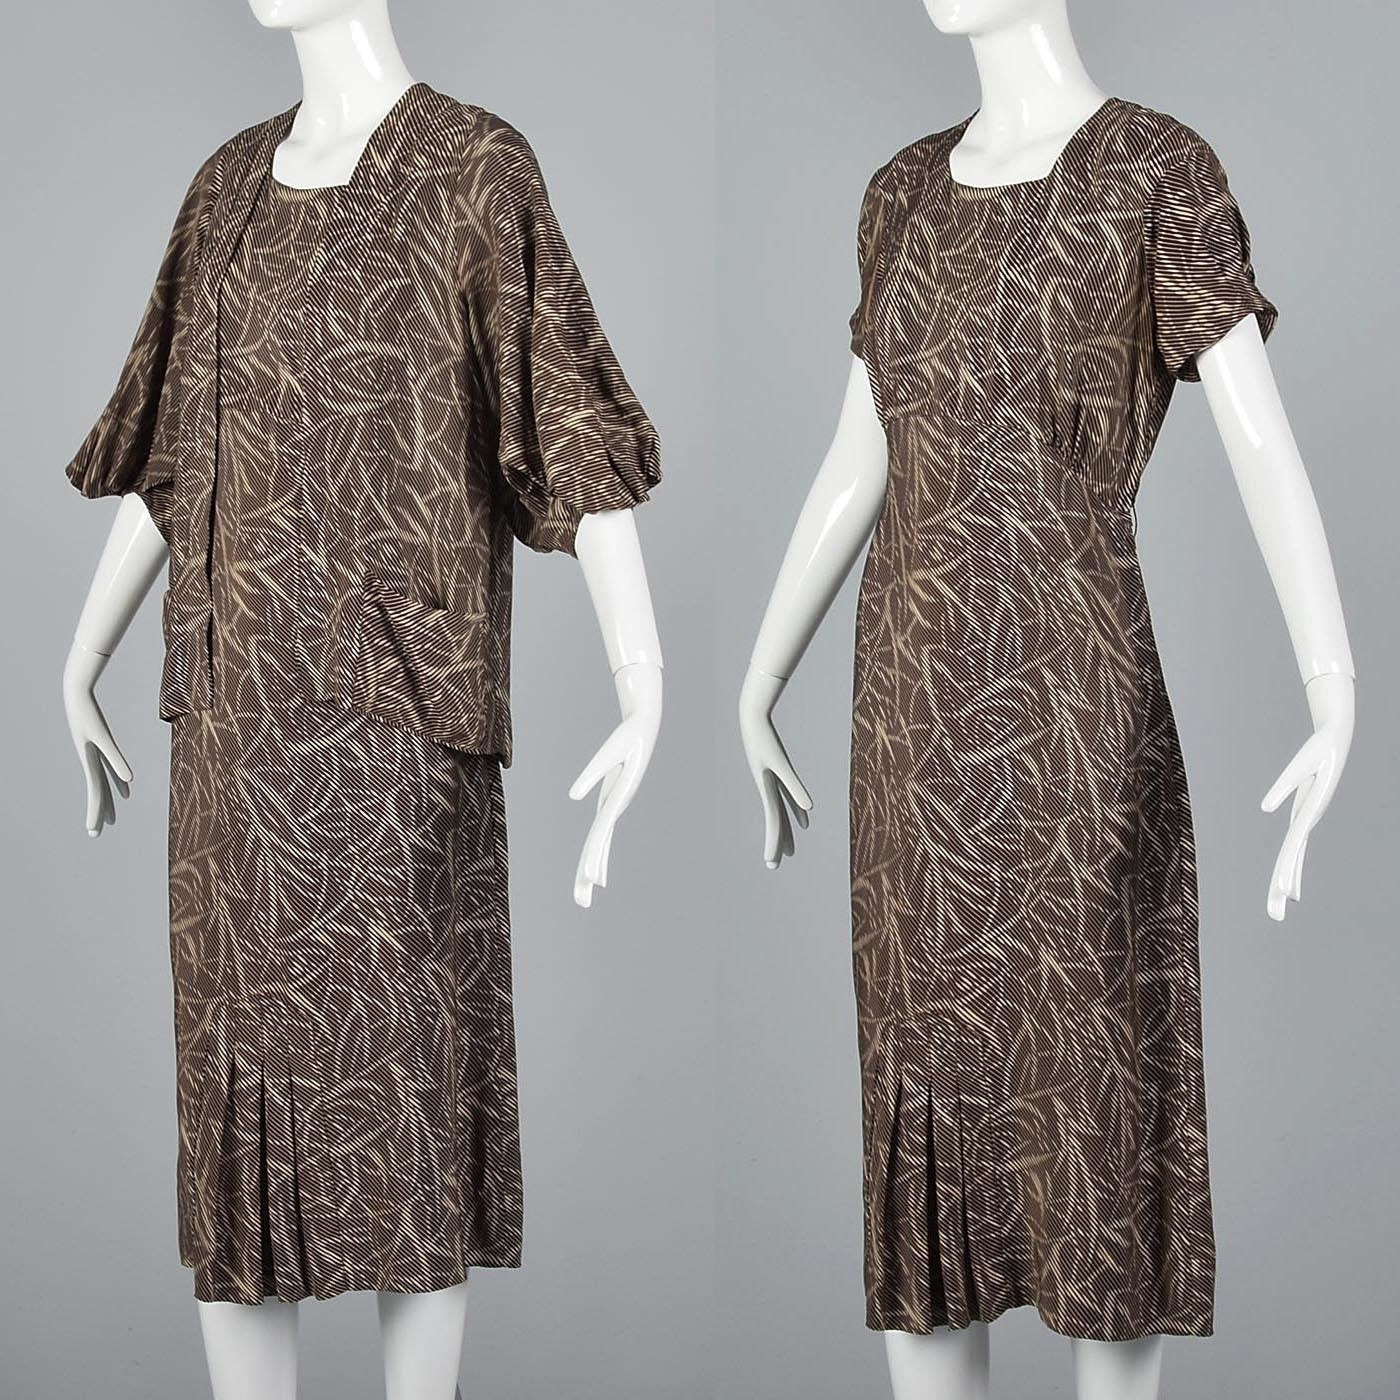 1930s Silk Day Dress & Matching Jacket with Balloon Sleeves